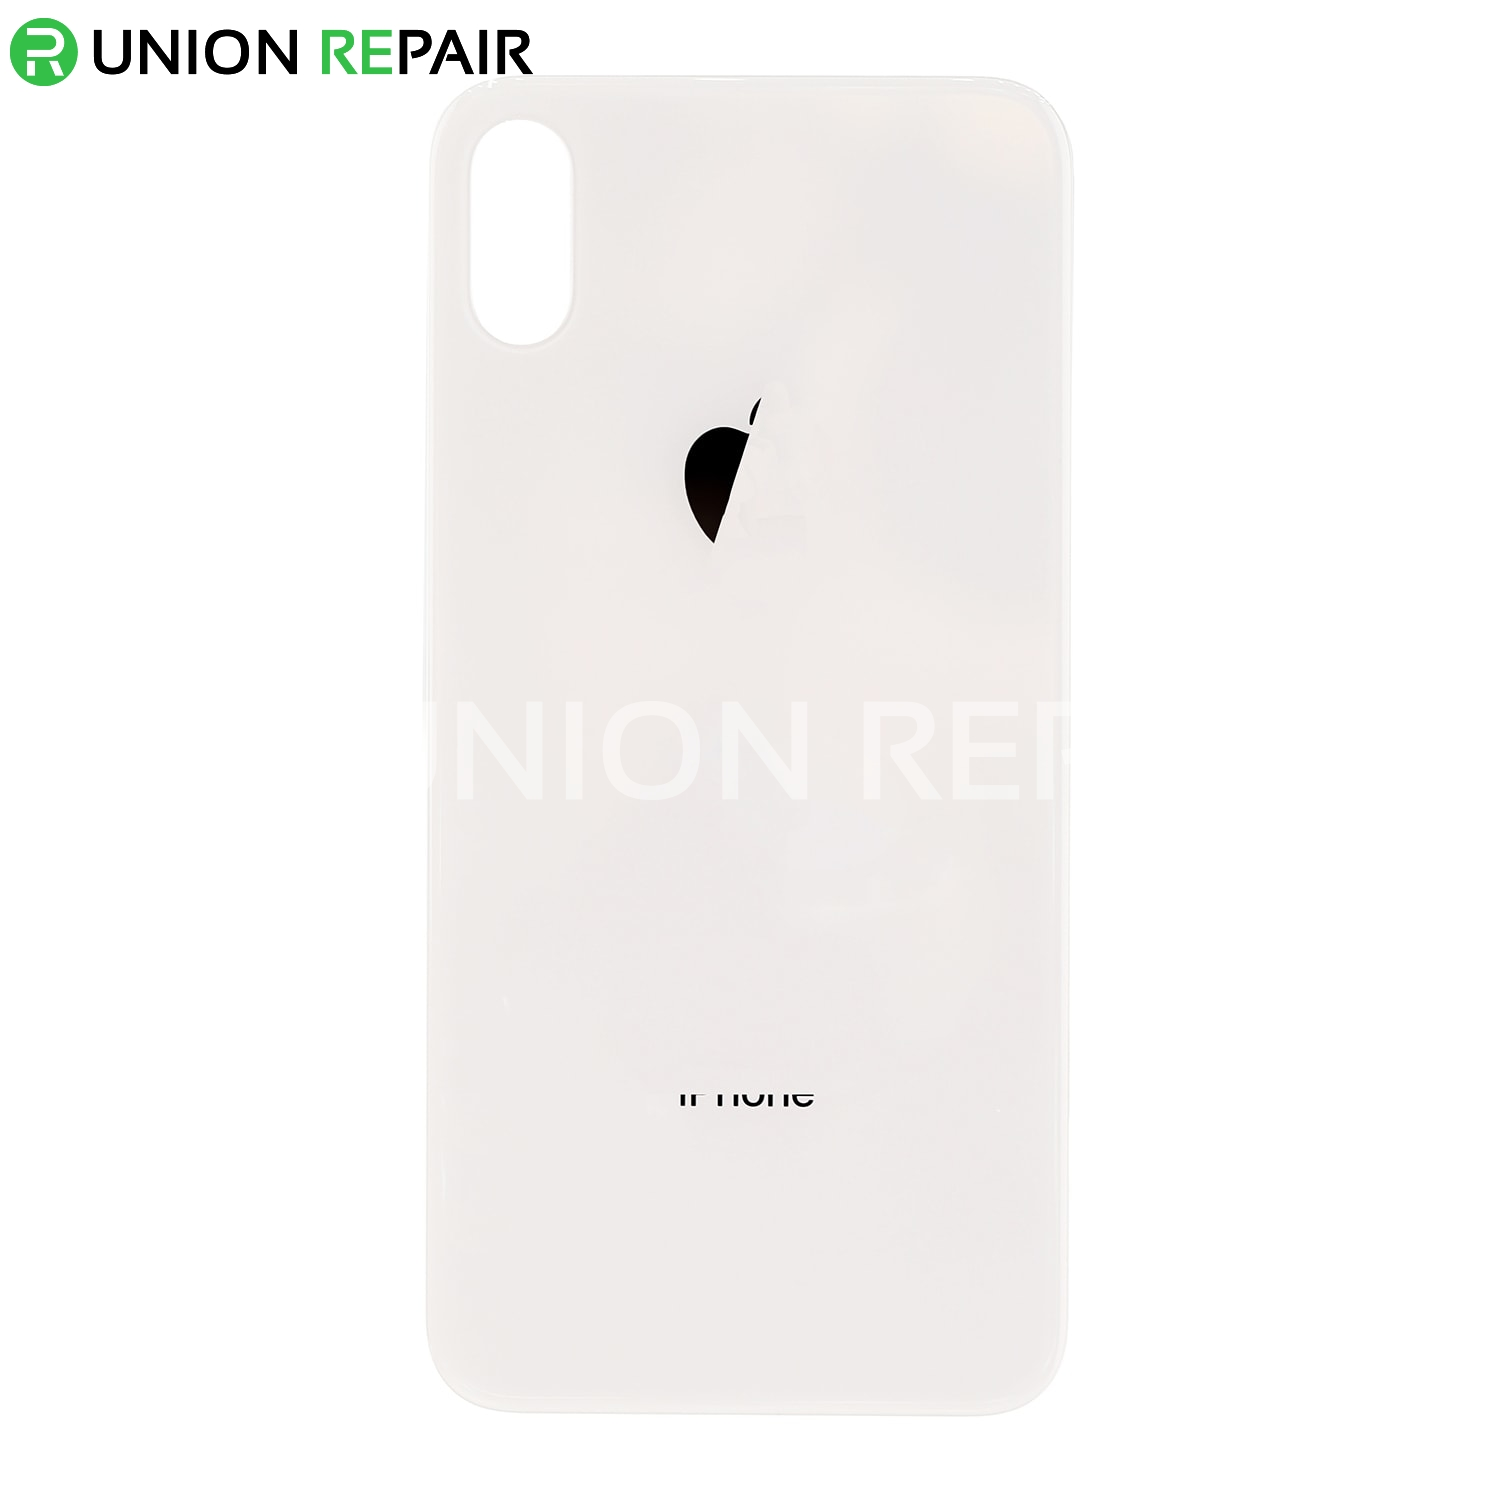 359025e598b08 16808-replacement-for-iphone-x-back-cover-white-1.jpg t 1540990243